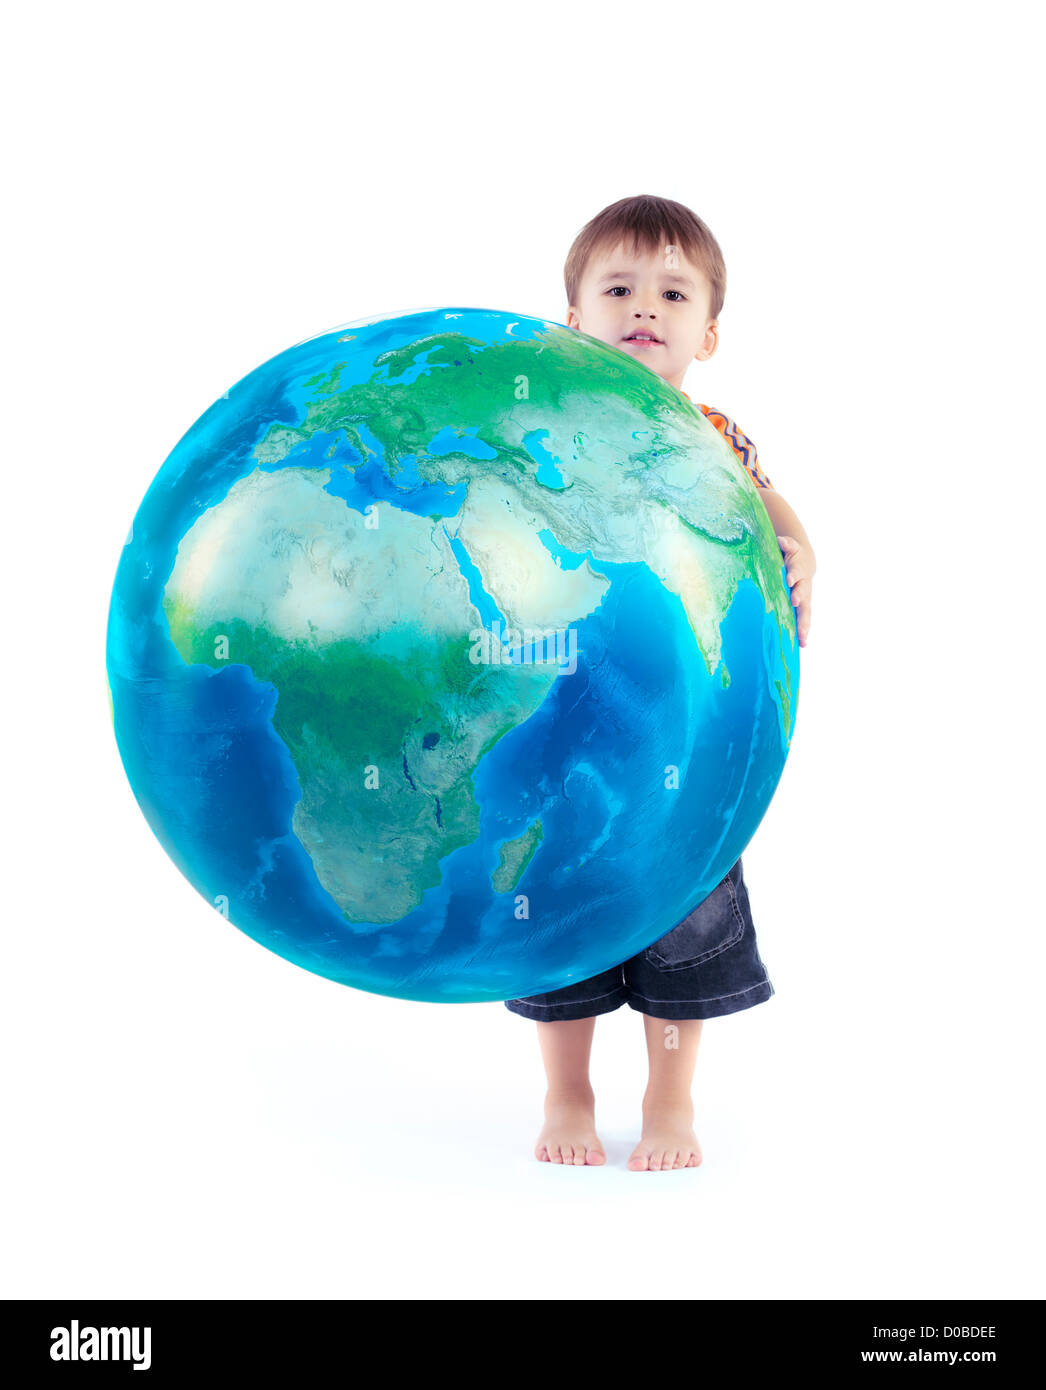 Little boy holding world blue planet Earth globe in his hands, conceptual photo isolated on white background. - Stock Image